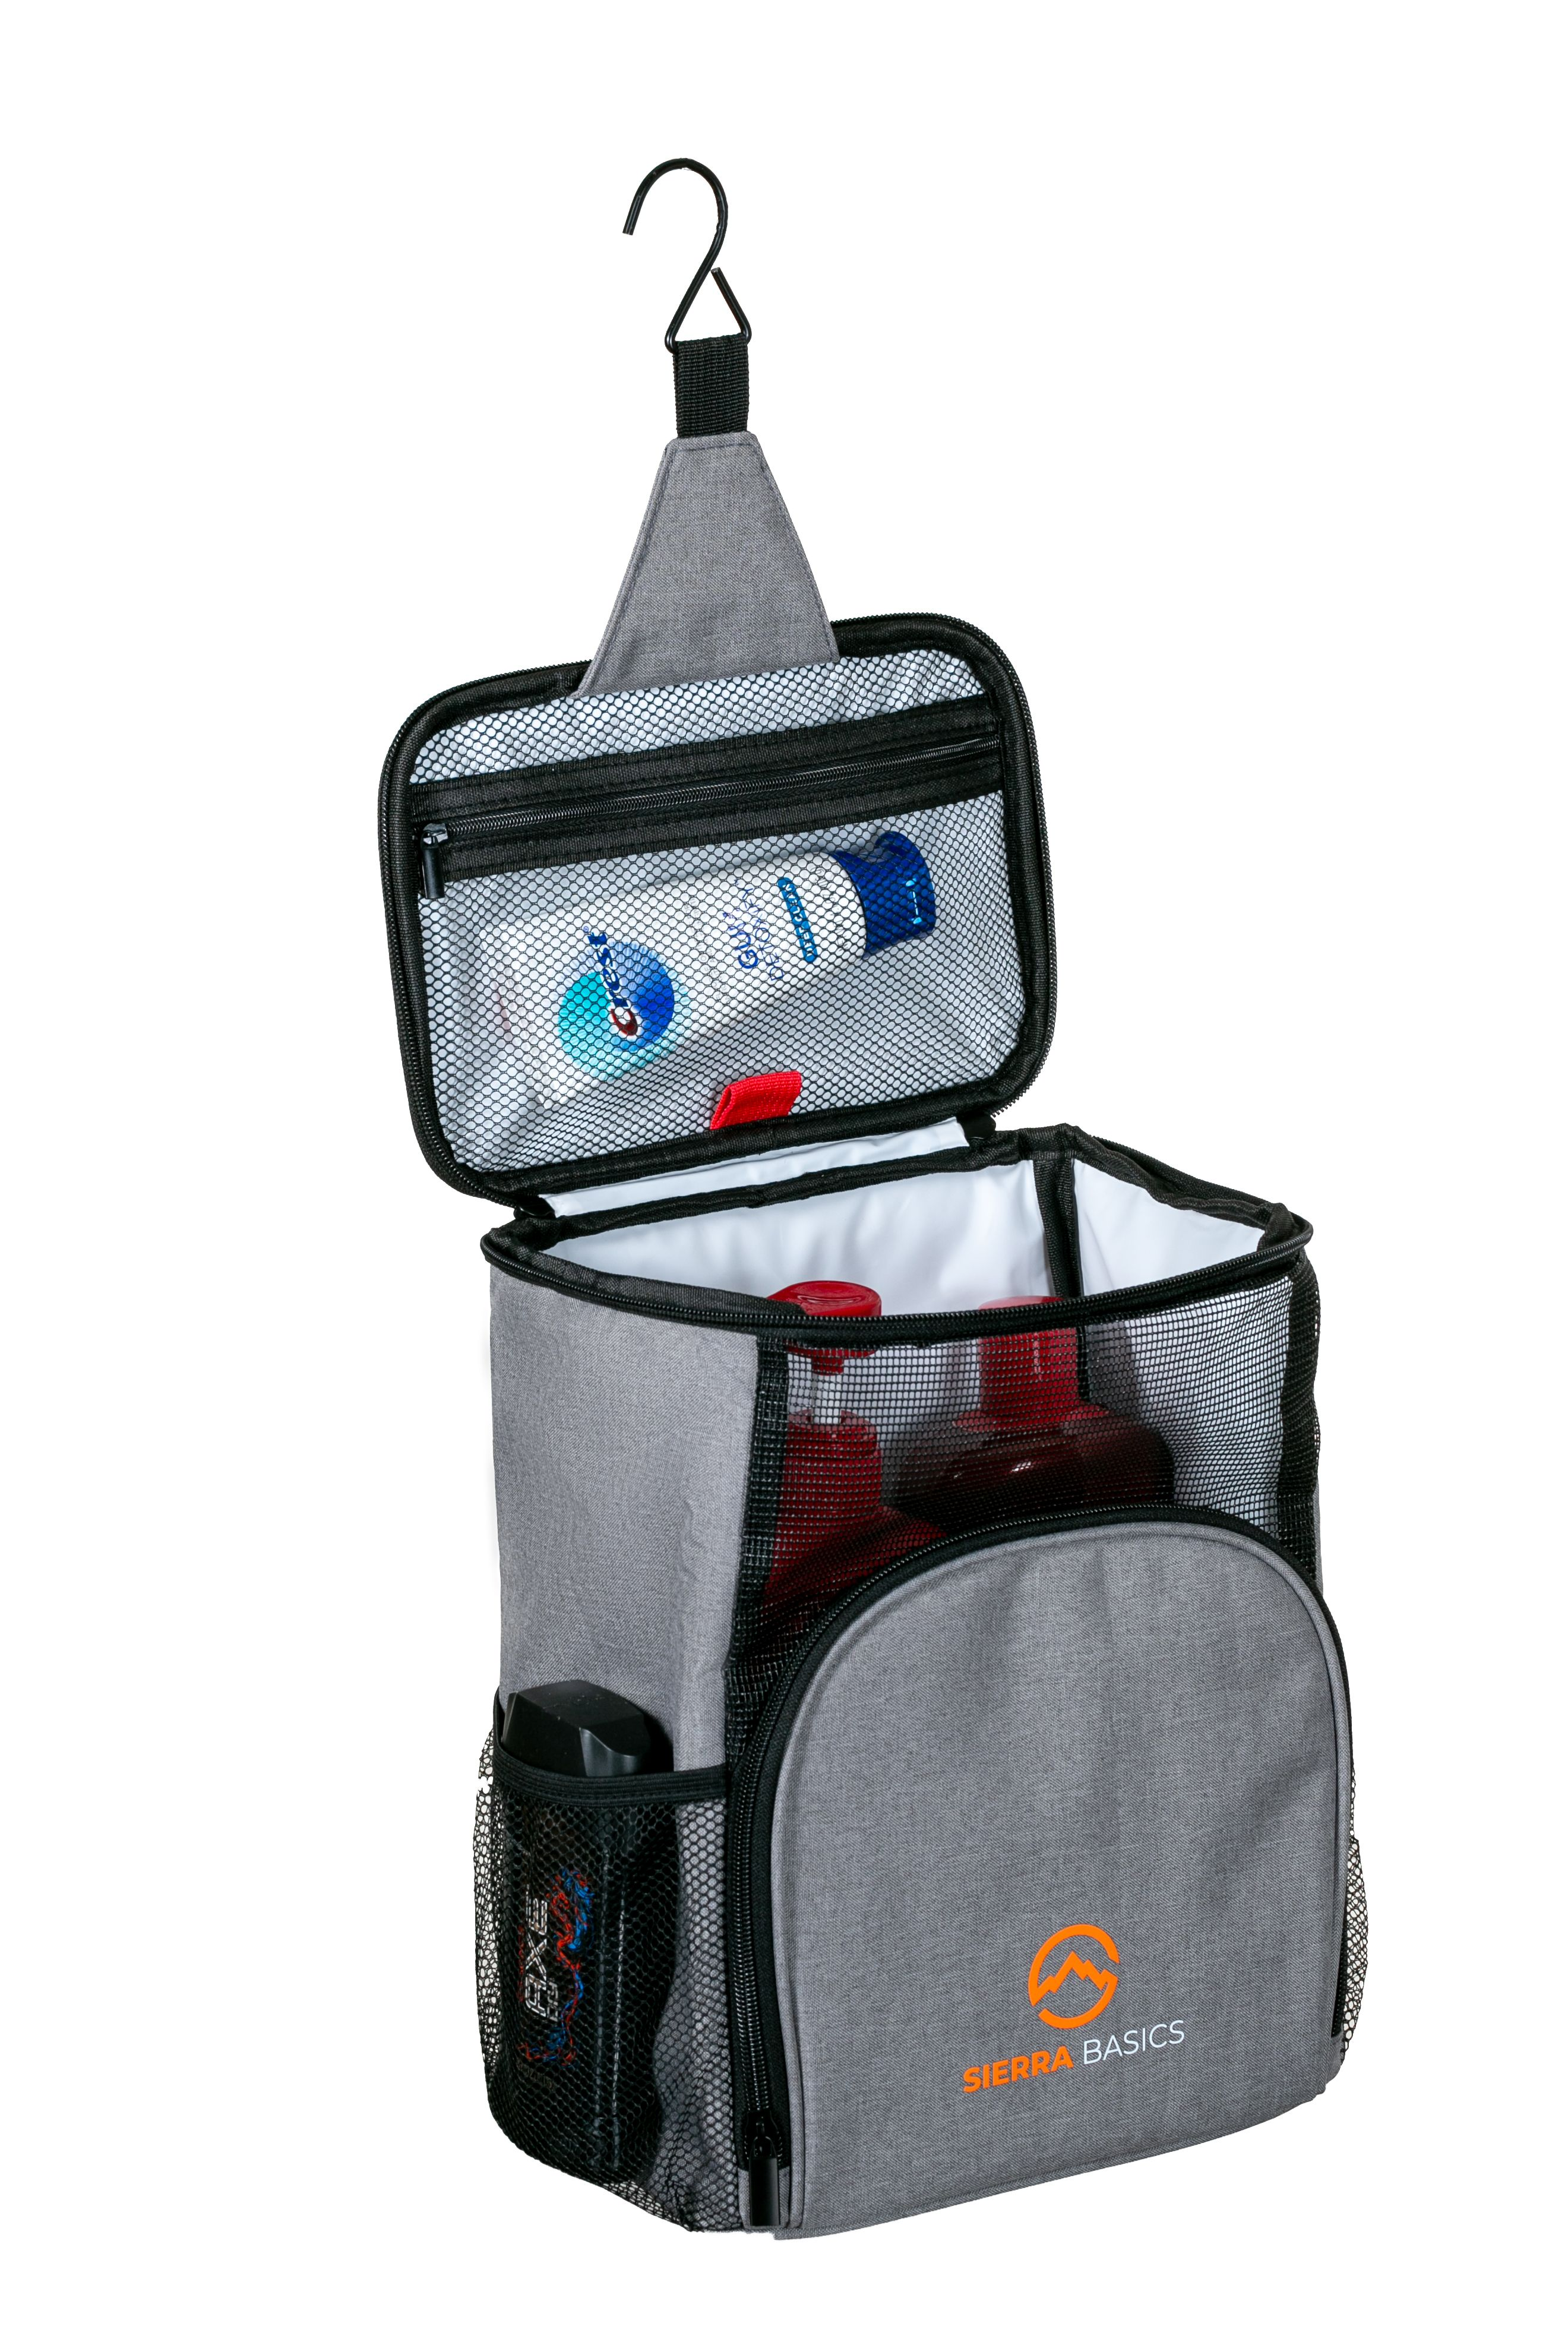 Sierra Basics Shower Caddy Portable, Bath Organizer with